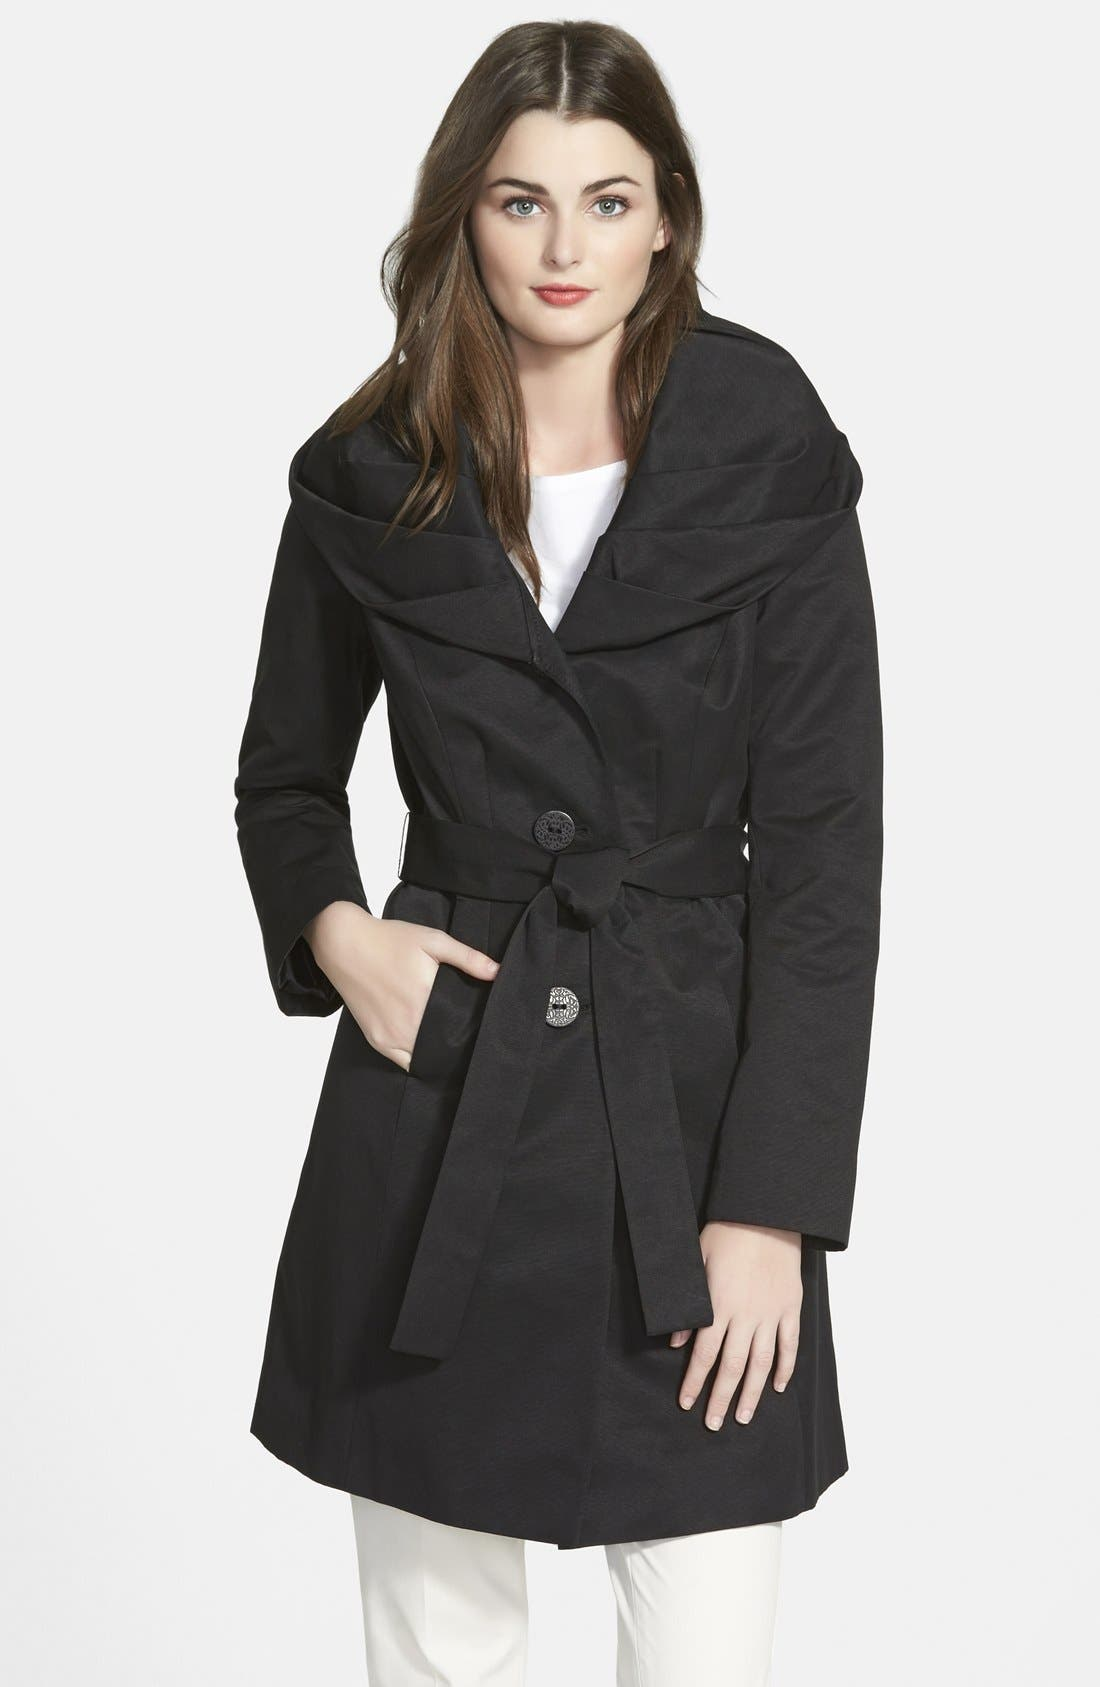 Alternate Image 1 Selected - T Tahari 'Cheryl' Trench Coat